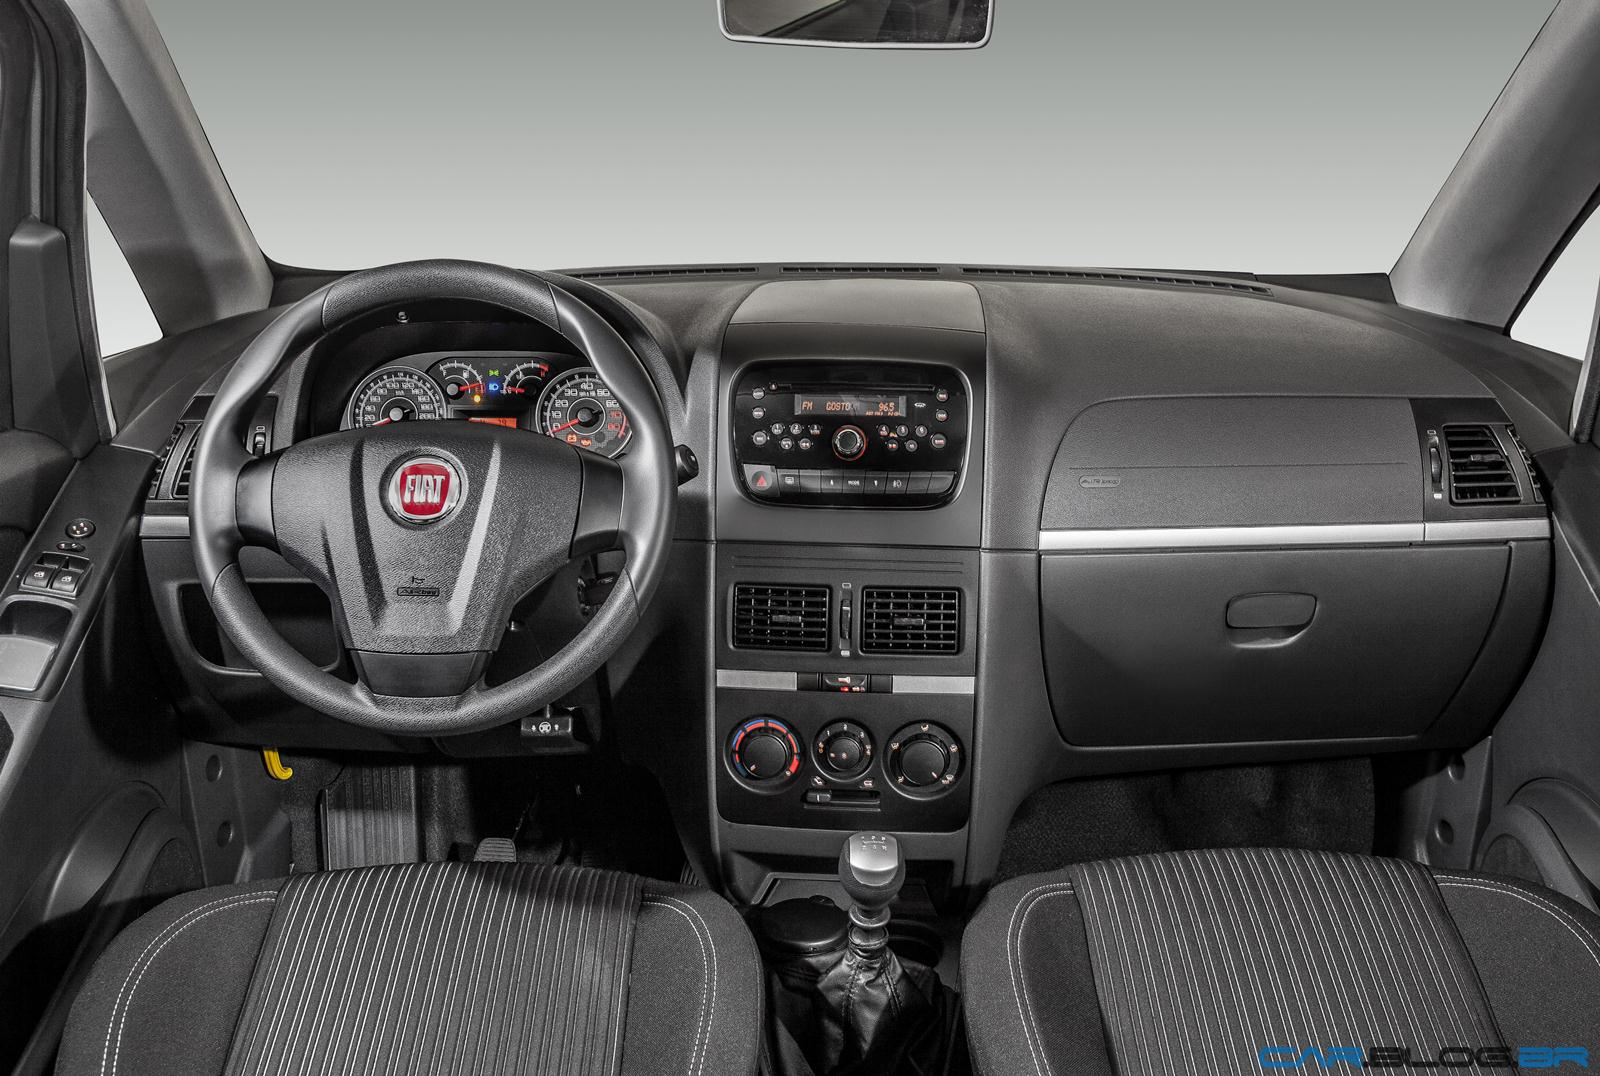 fiat idea 2013 fotos pre o e especifica es t cnicas ForFiat Idea Attractive 2013 Precio